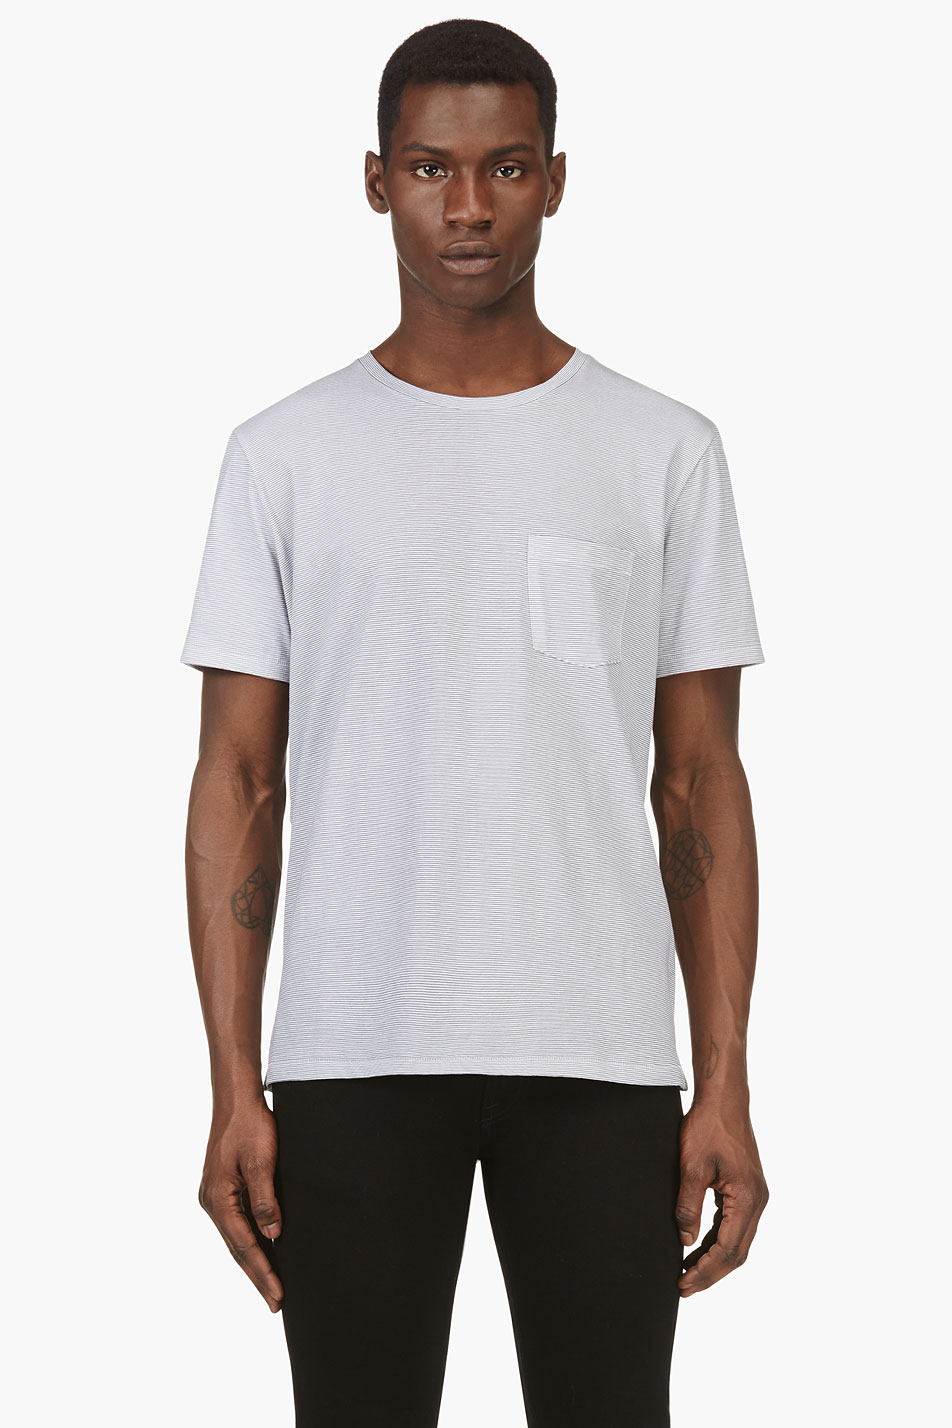 Rag and bone white and grey striped pocket t shirt for Rag and bone white t shirt